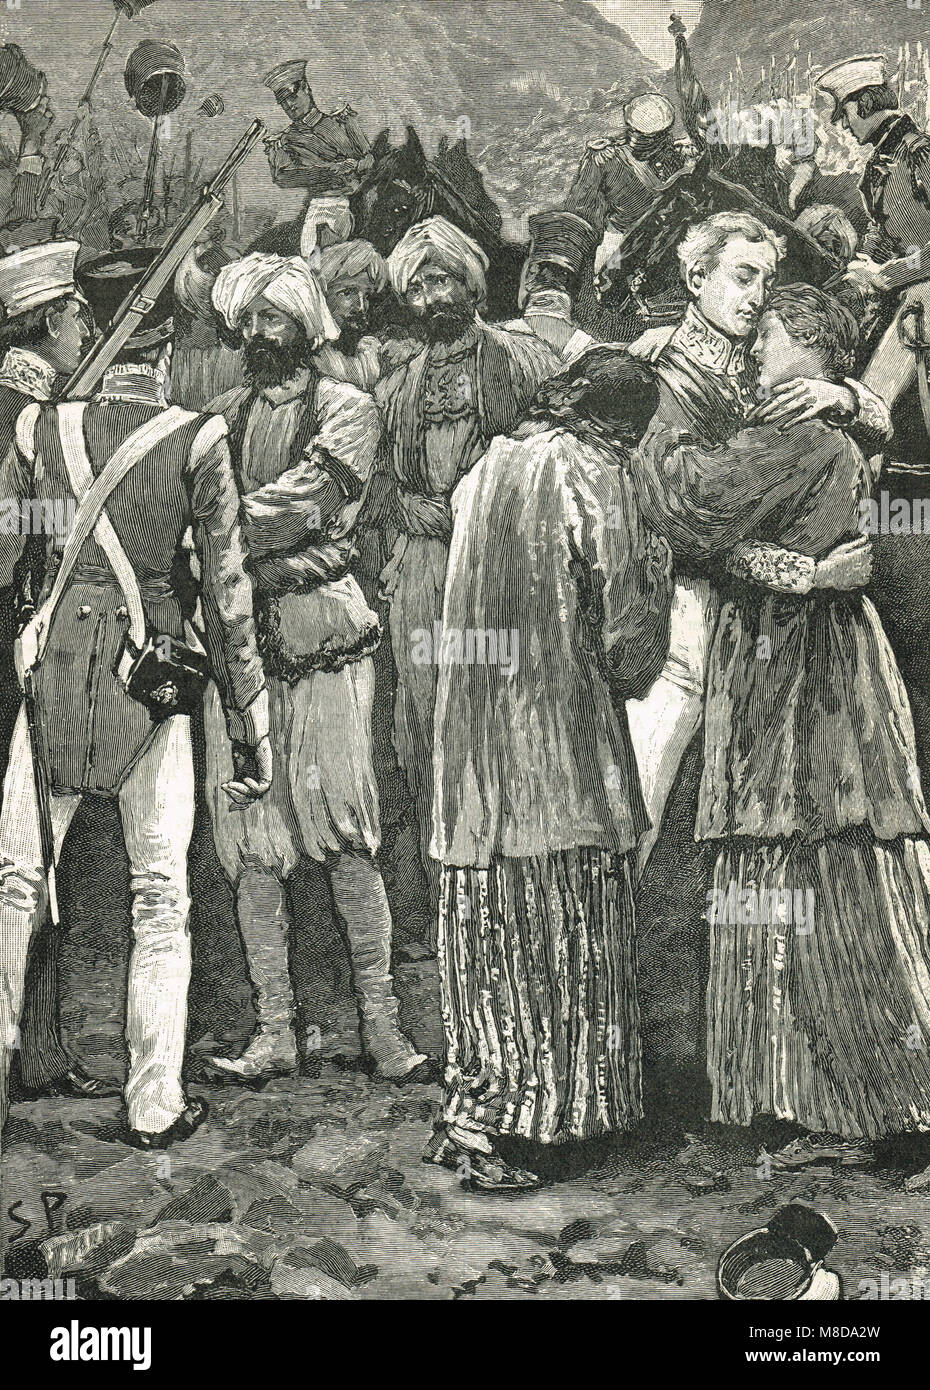 The  rescue of the prisoners taken hostage by Wazir Akbar Khan, 17 September 1842, First Anglo-Afghan War - Stock Image